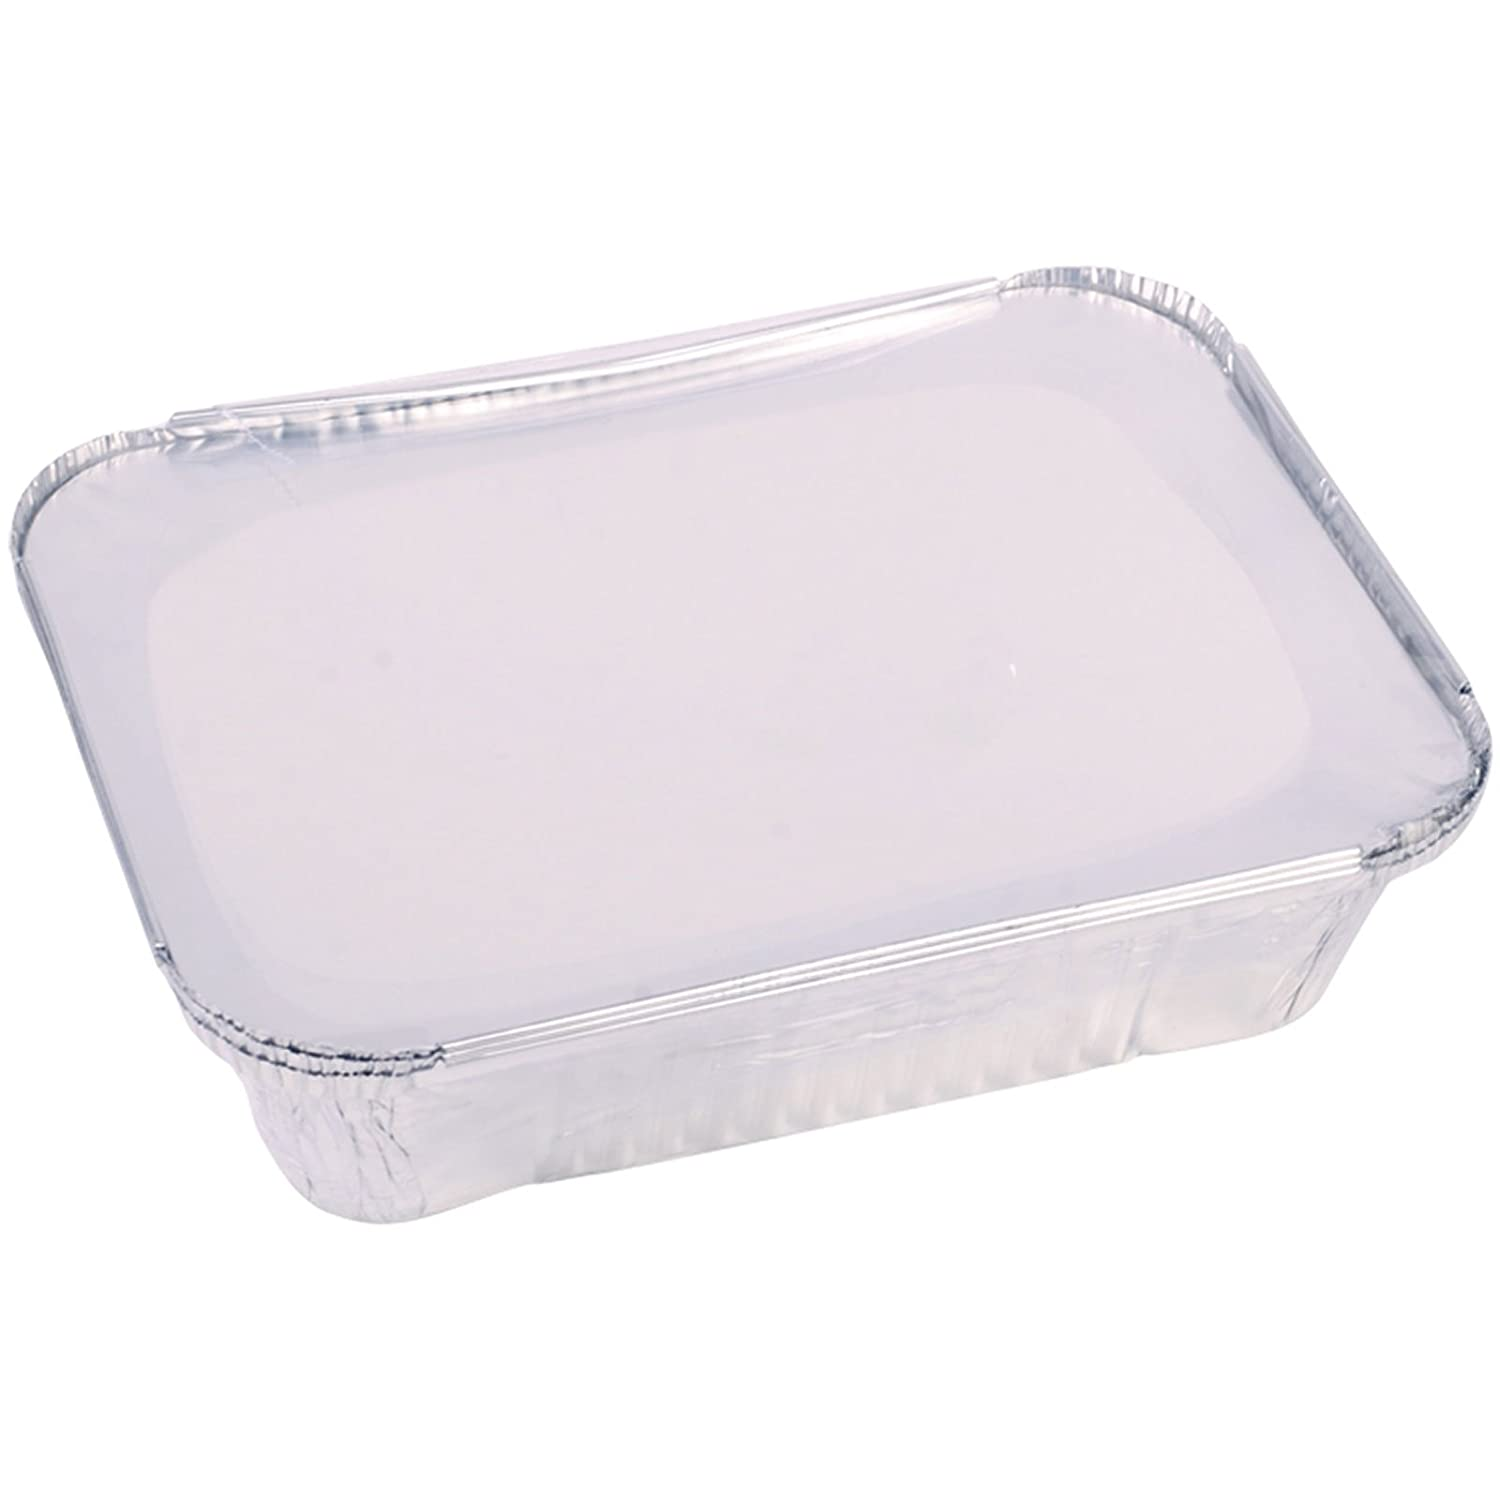 Britwear 3 x Aluminium Foil Takeaway Food Cooking Containers + Lids (255mm x190mm x70mm)